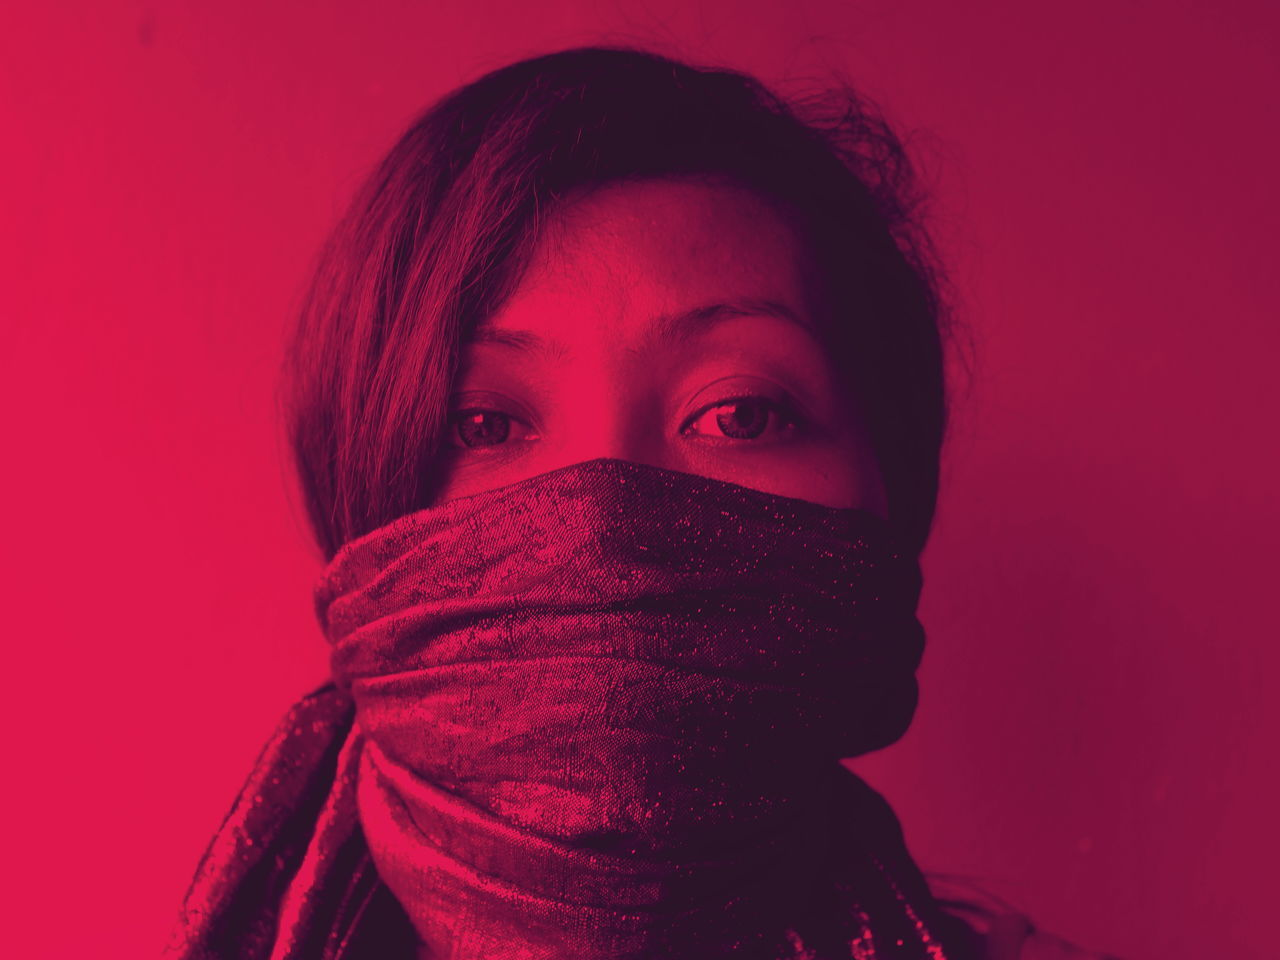 Close-up portrait of young woman covered with scarf against red background